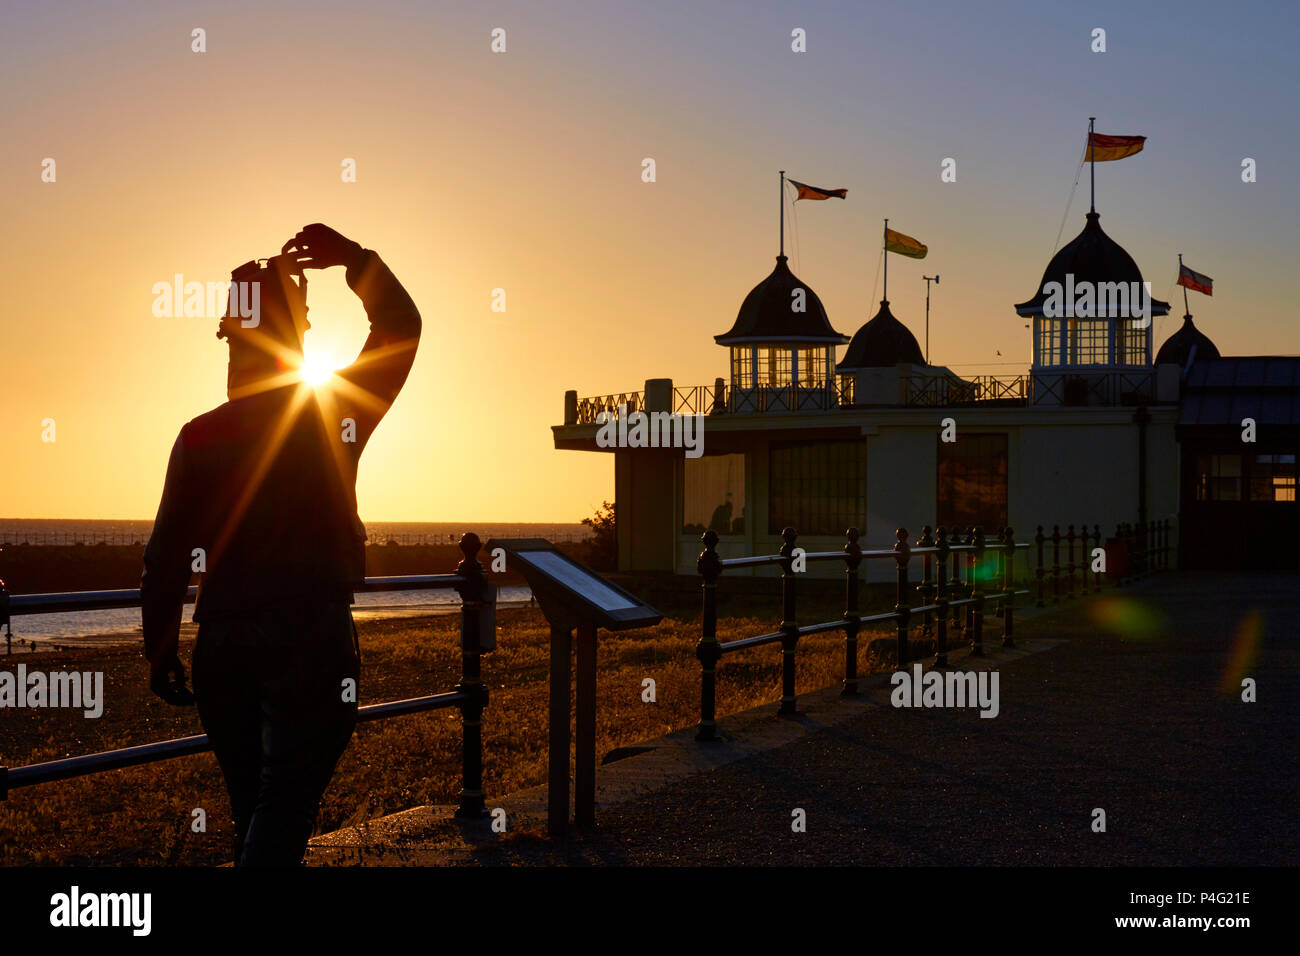 Herne Bay, Kent, UK. 22nd June 2018: UK Weather. A Glorious and clear sunrise at Herne Bay. The Stephen Melton statue of Amy Johnson who went missing off Herne Bay in 1941, stands facing the sunrise and the bandstand. High temperatures and fine weather are predicted to last into next week. Credit: Alan Payton/Alamy Live News - Stock Image